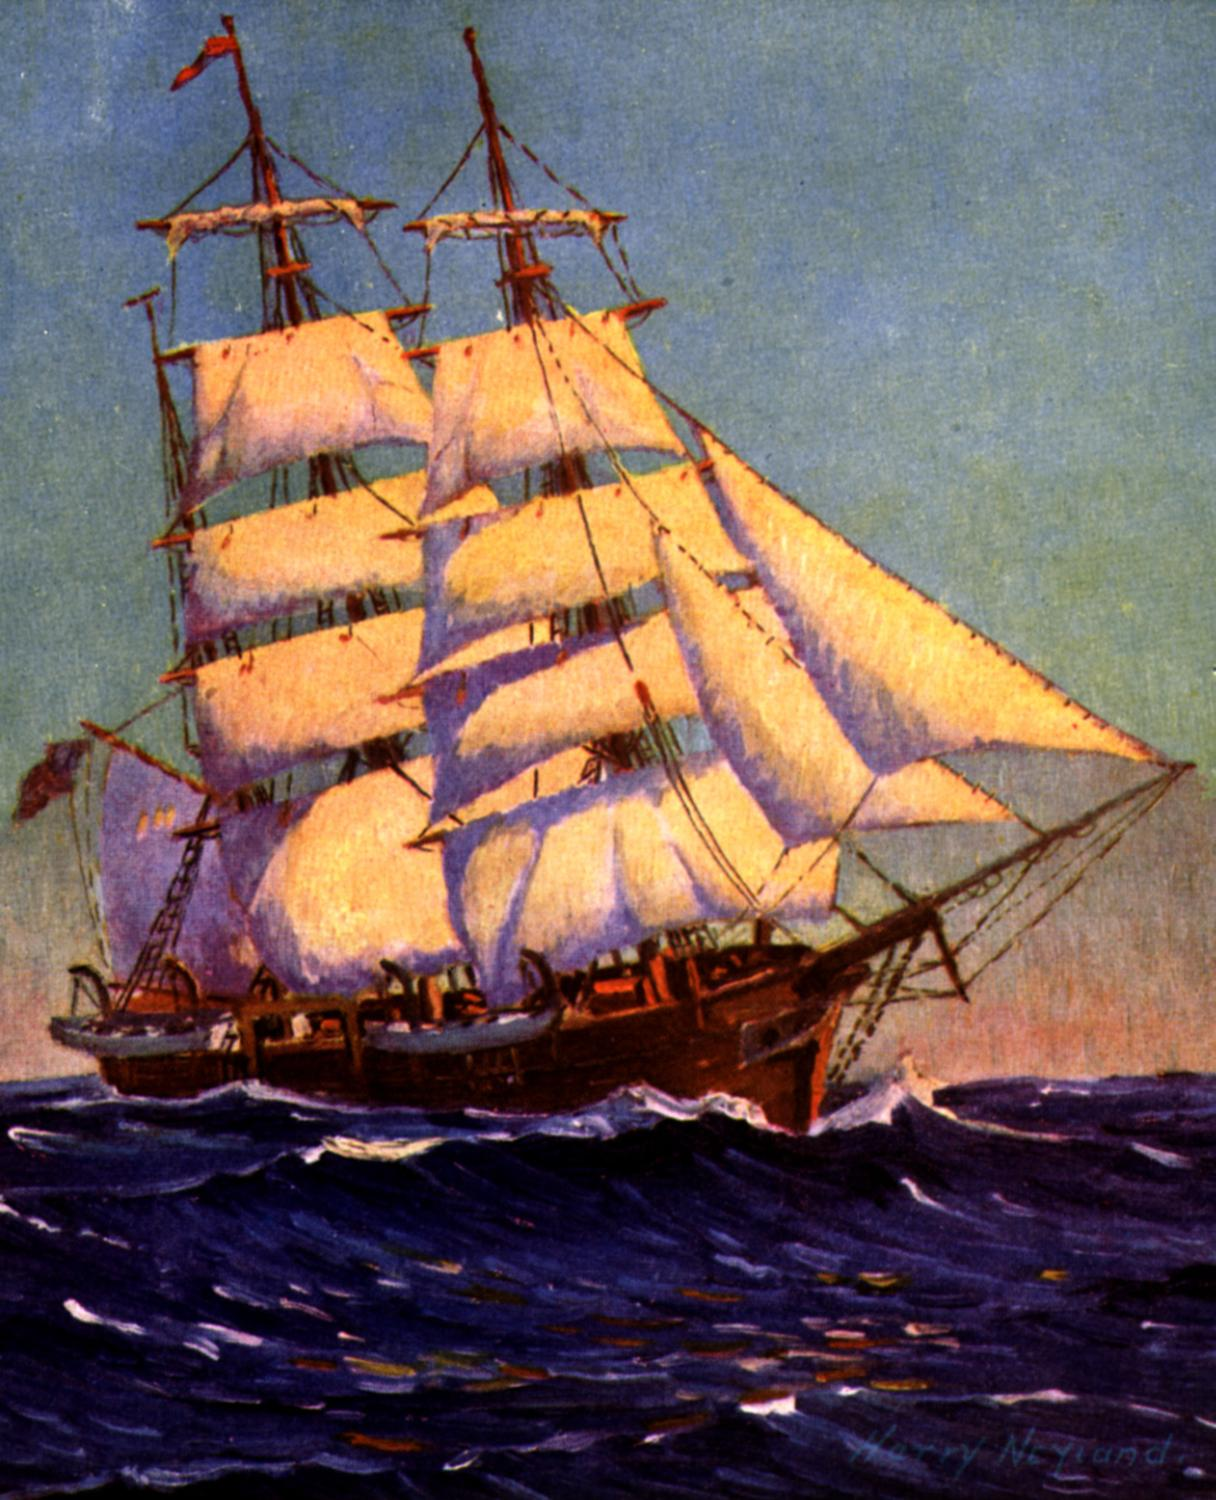 Pirates & Privateers - Superstitions and the Sea